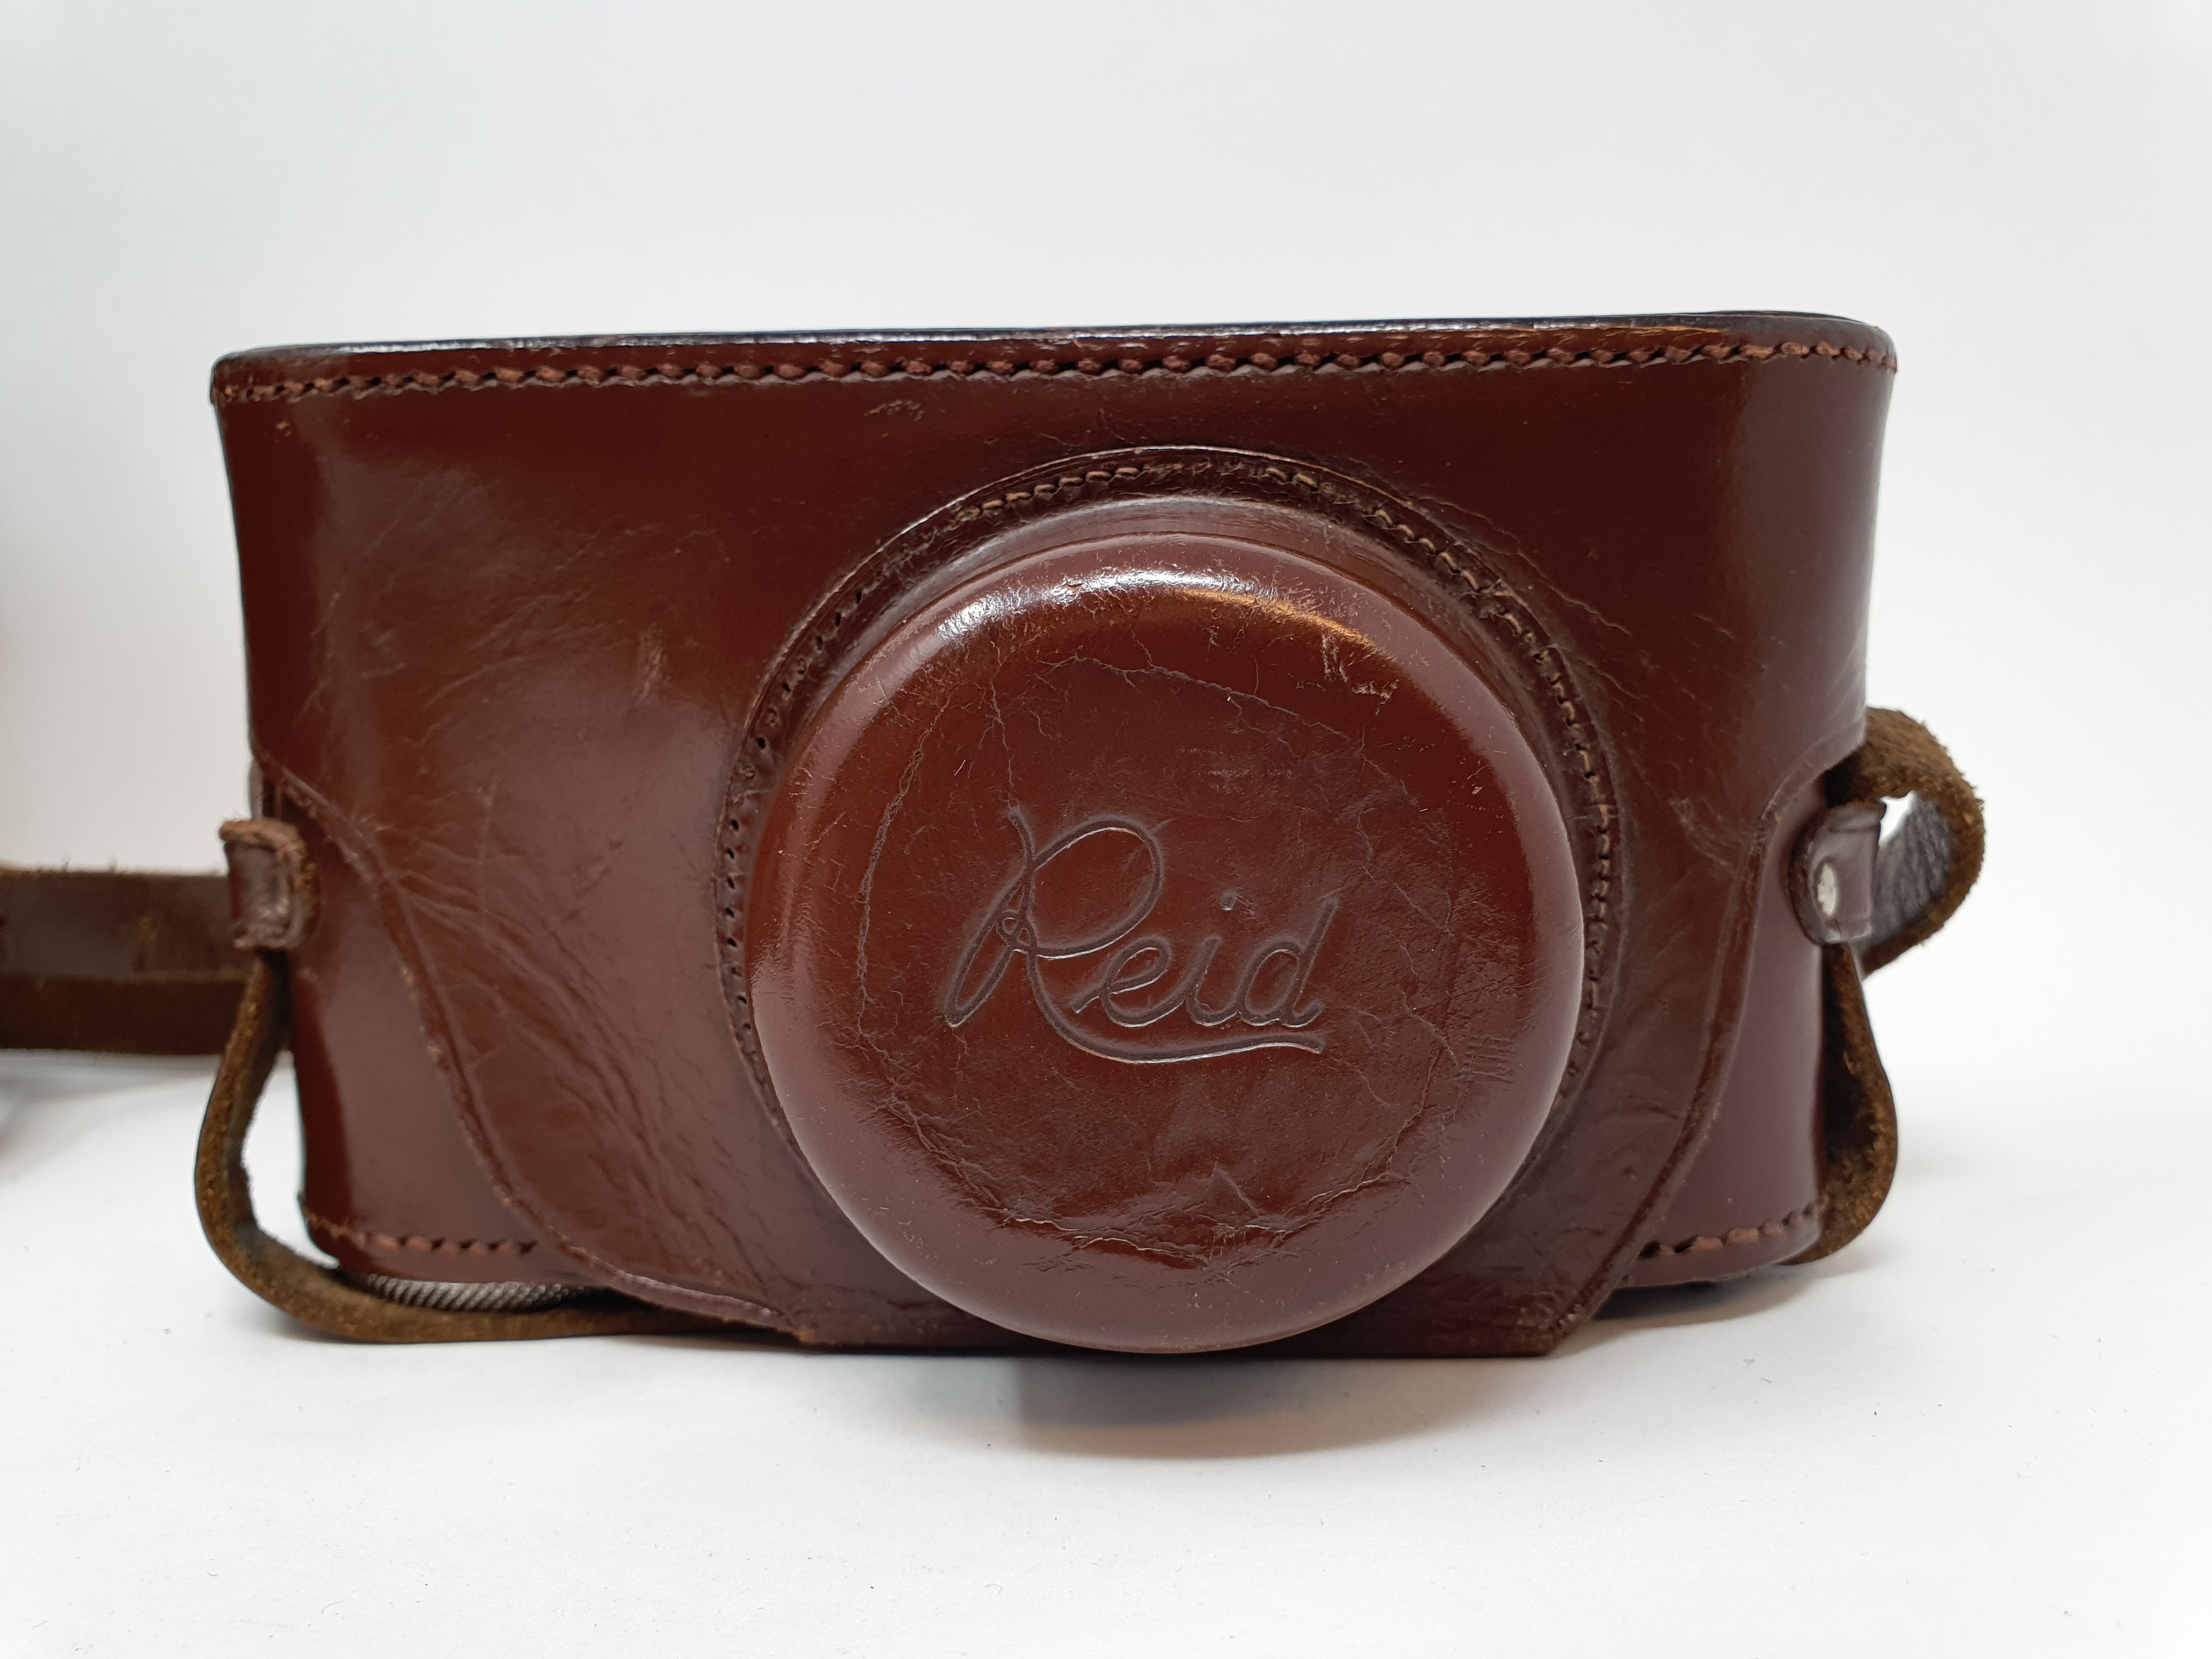 A Reid & Sigrist ltd camera, serial number P2750, with leather outer case, lens, and accessories - Image 5 of 7